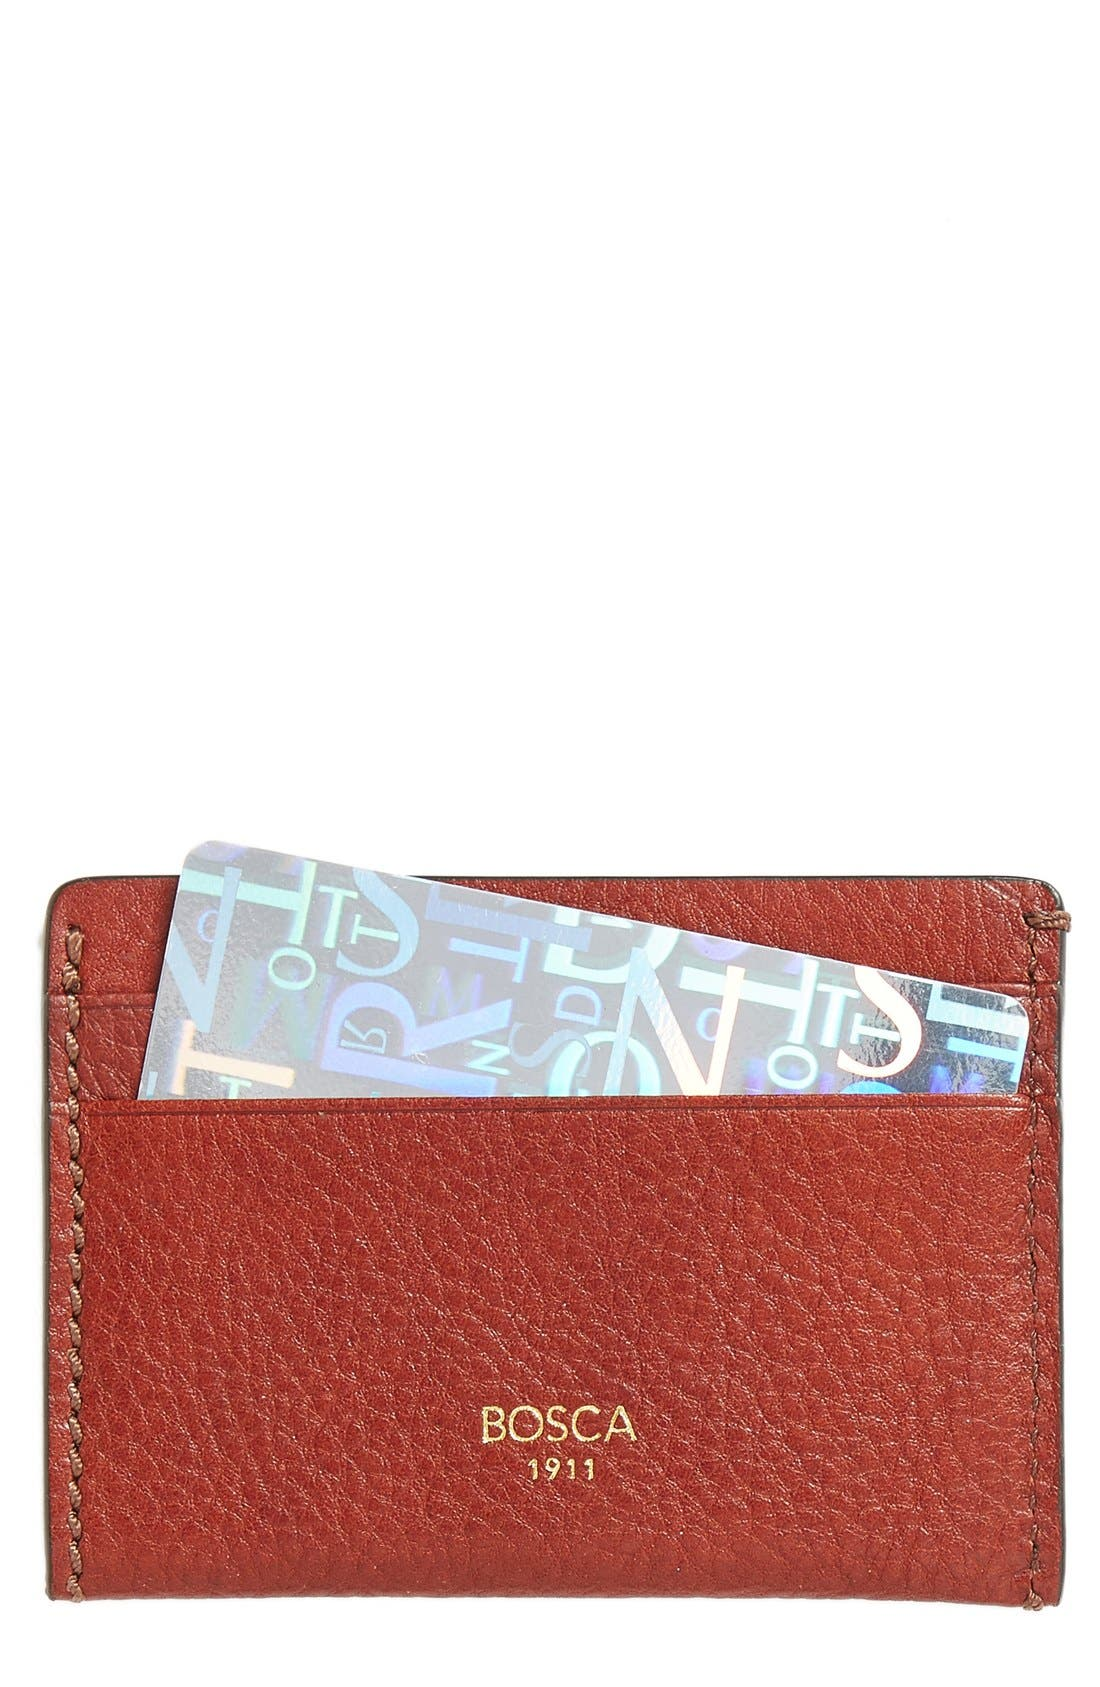 Main Image - Bosca Leather Card Case